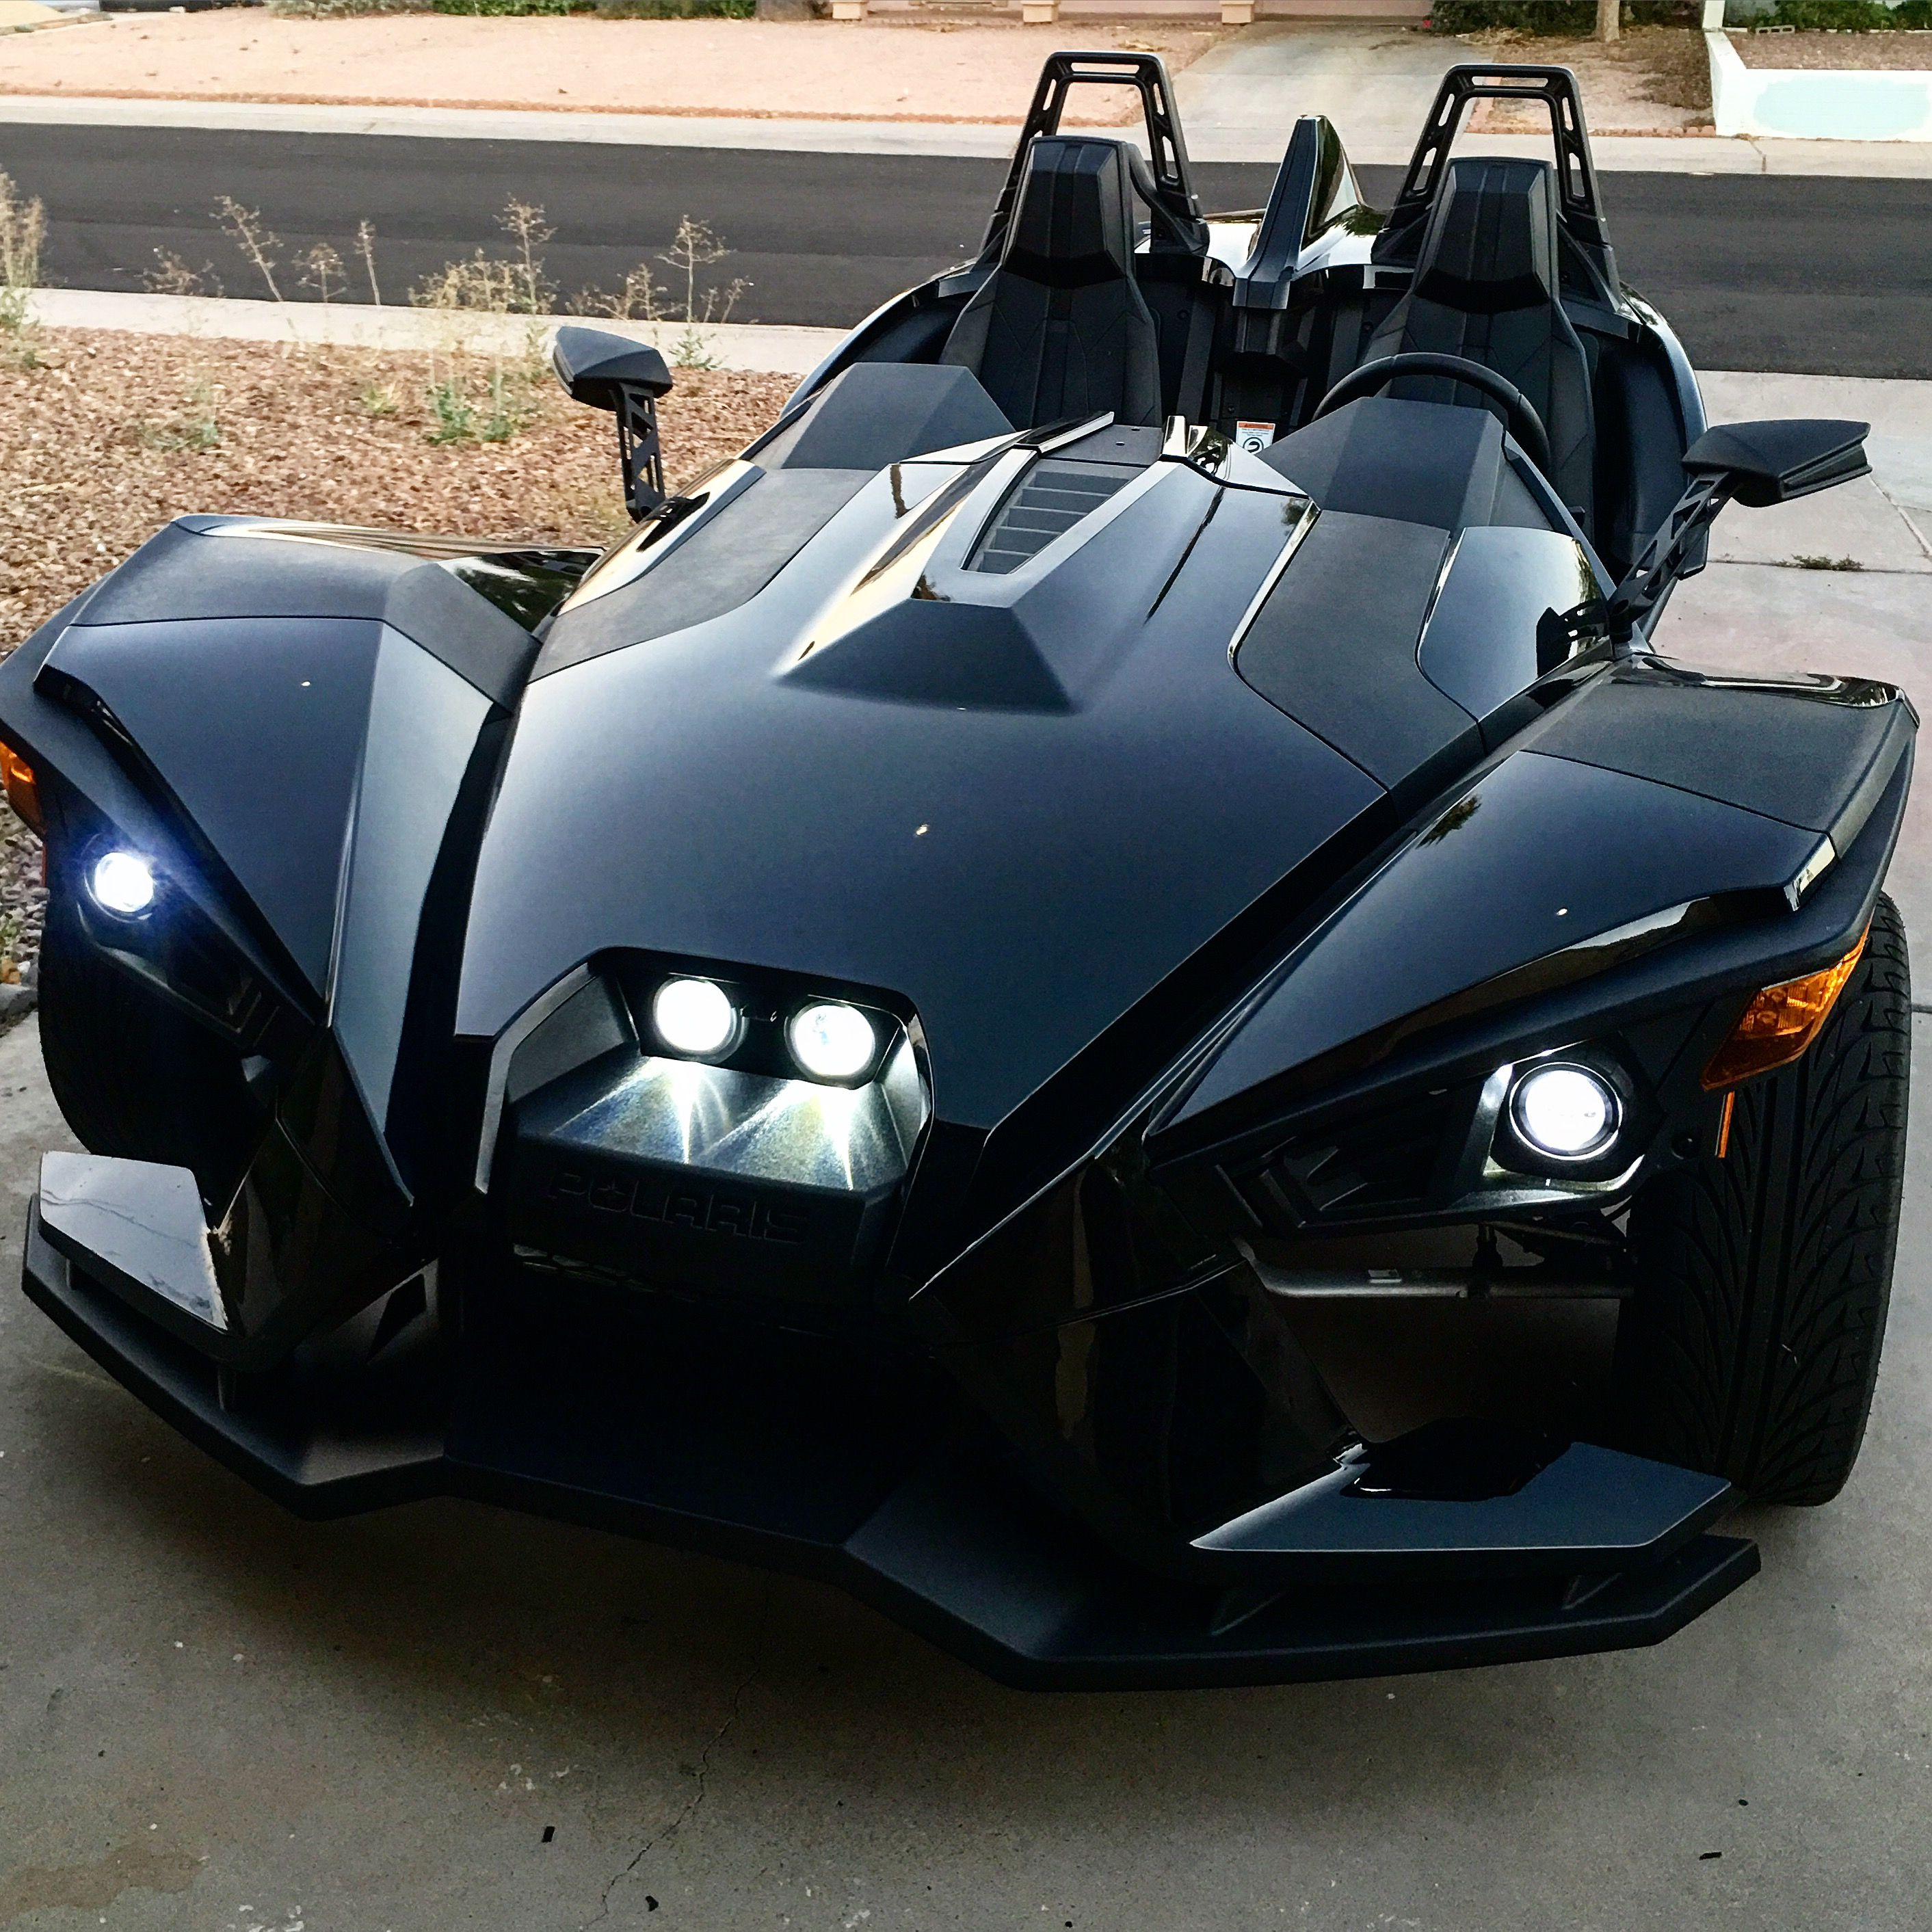 Polaris Slingshot These 3 Wheelers Are So Cool I Sat In One